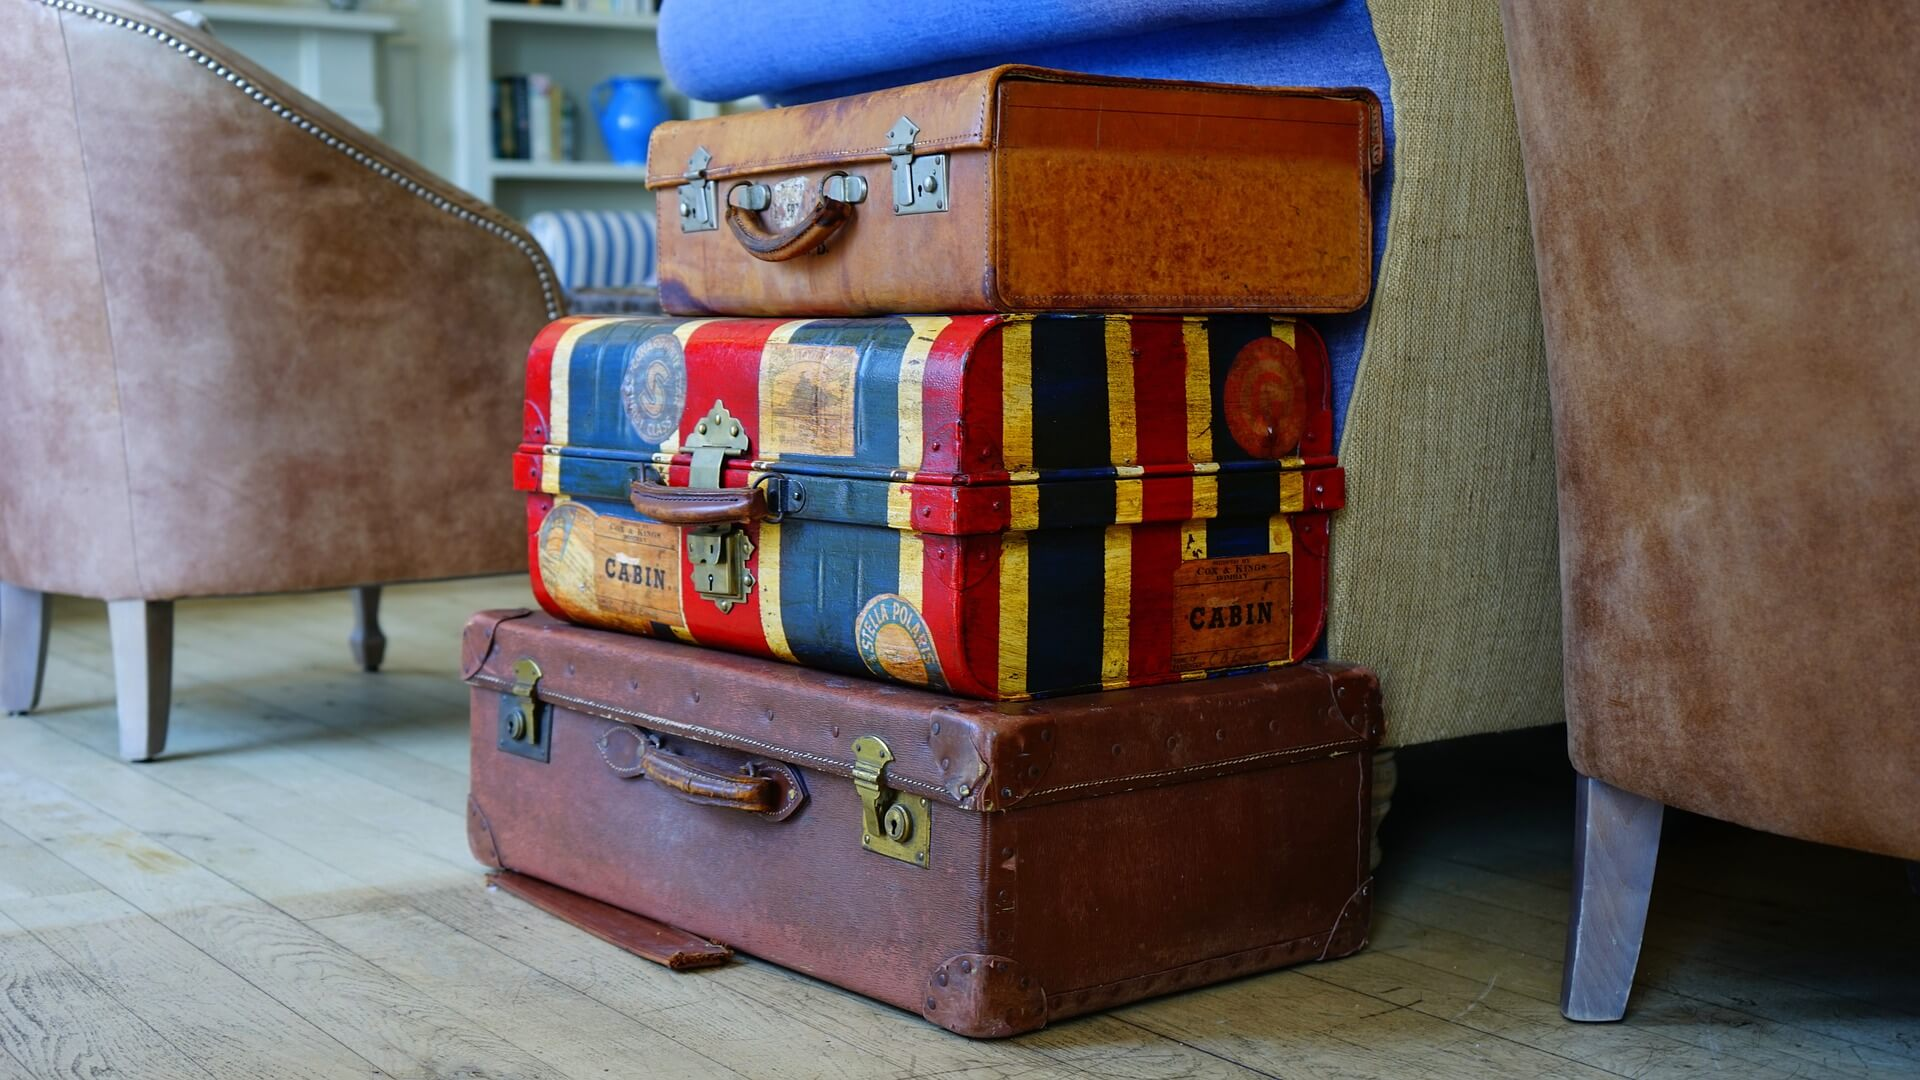 Airbnb Luggage Storage: What to Do With Luggage Before Check-In